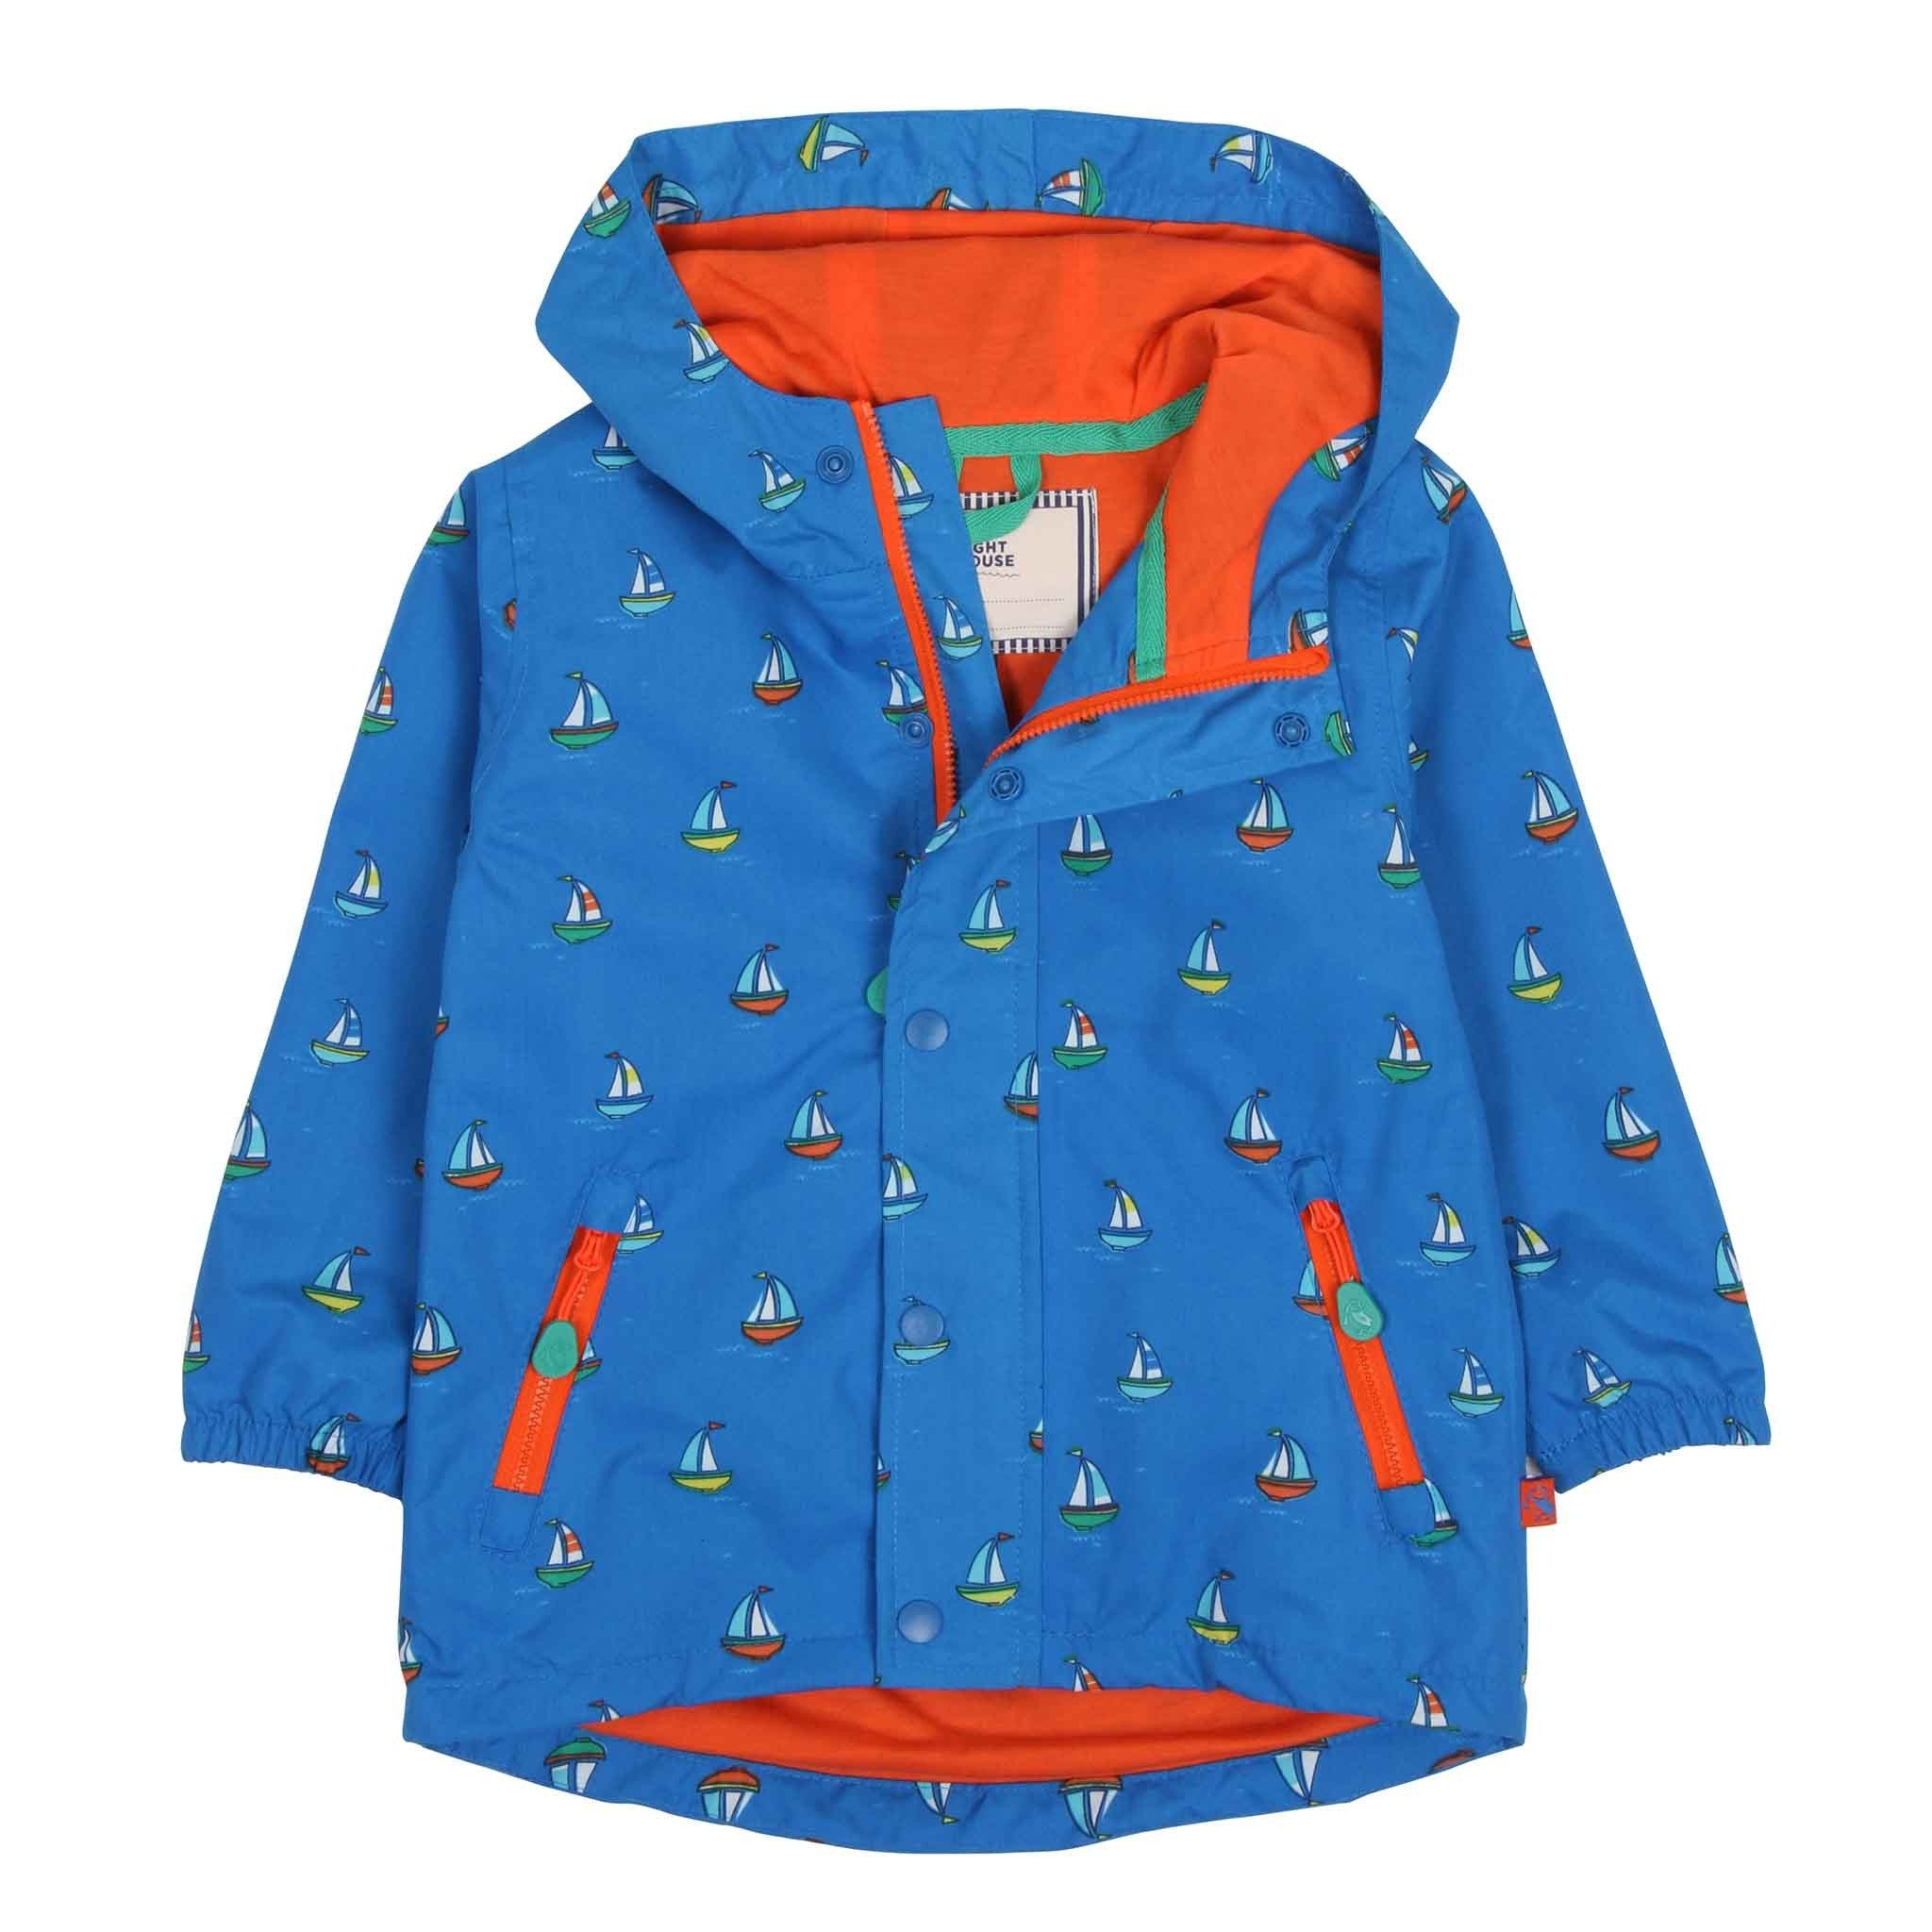 Skipper Nautical Coat - Bright Blue Boat